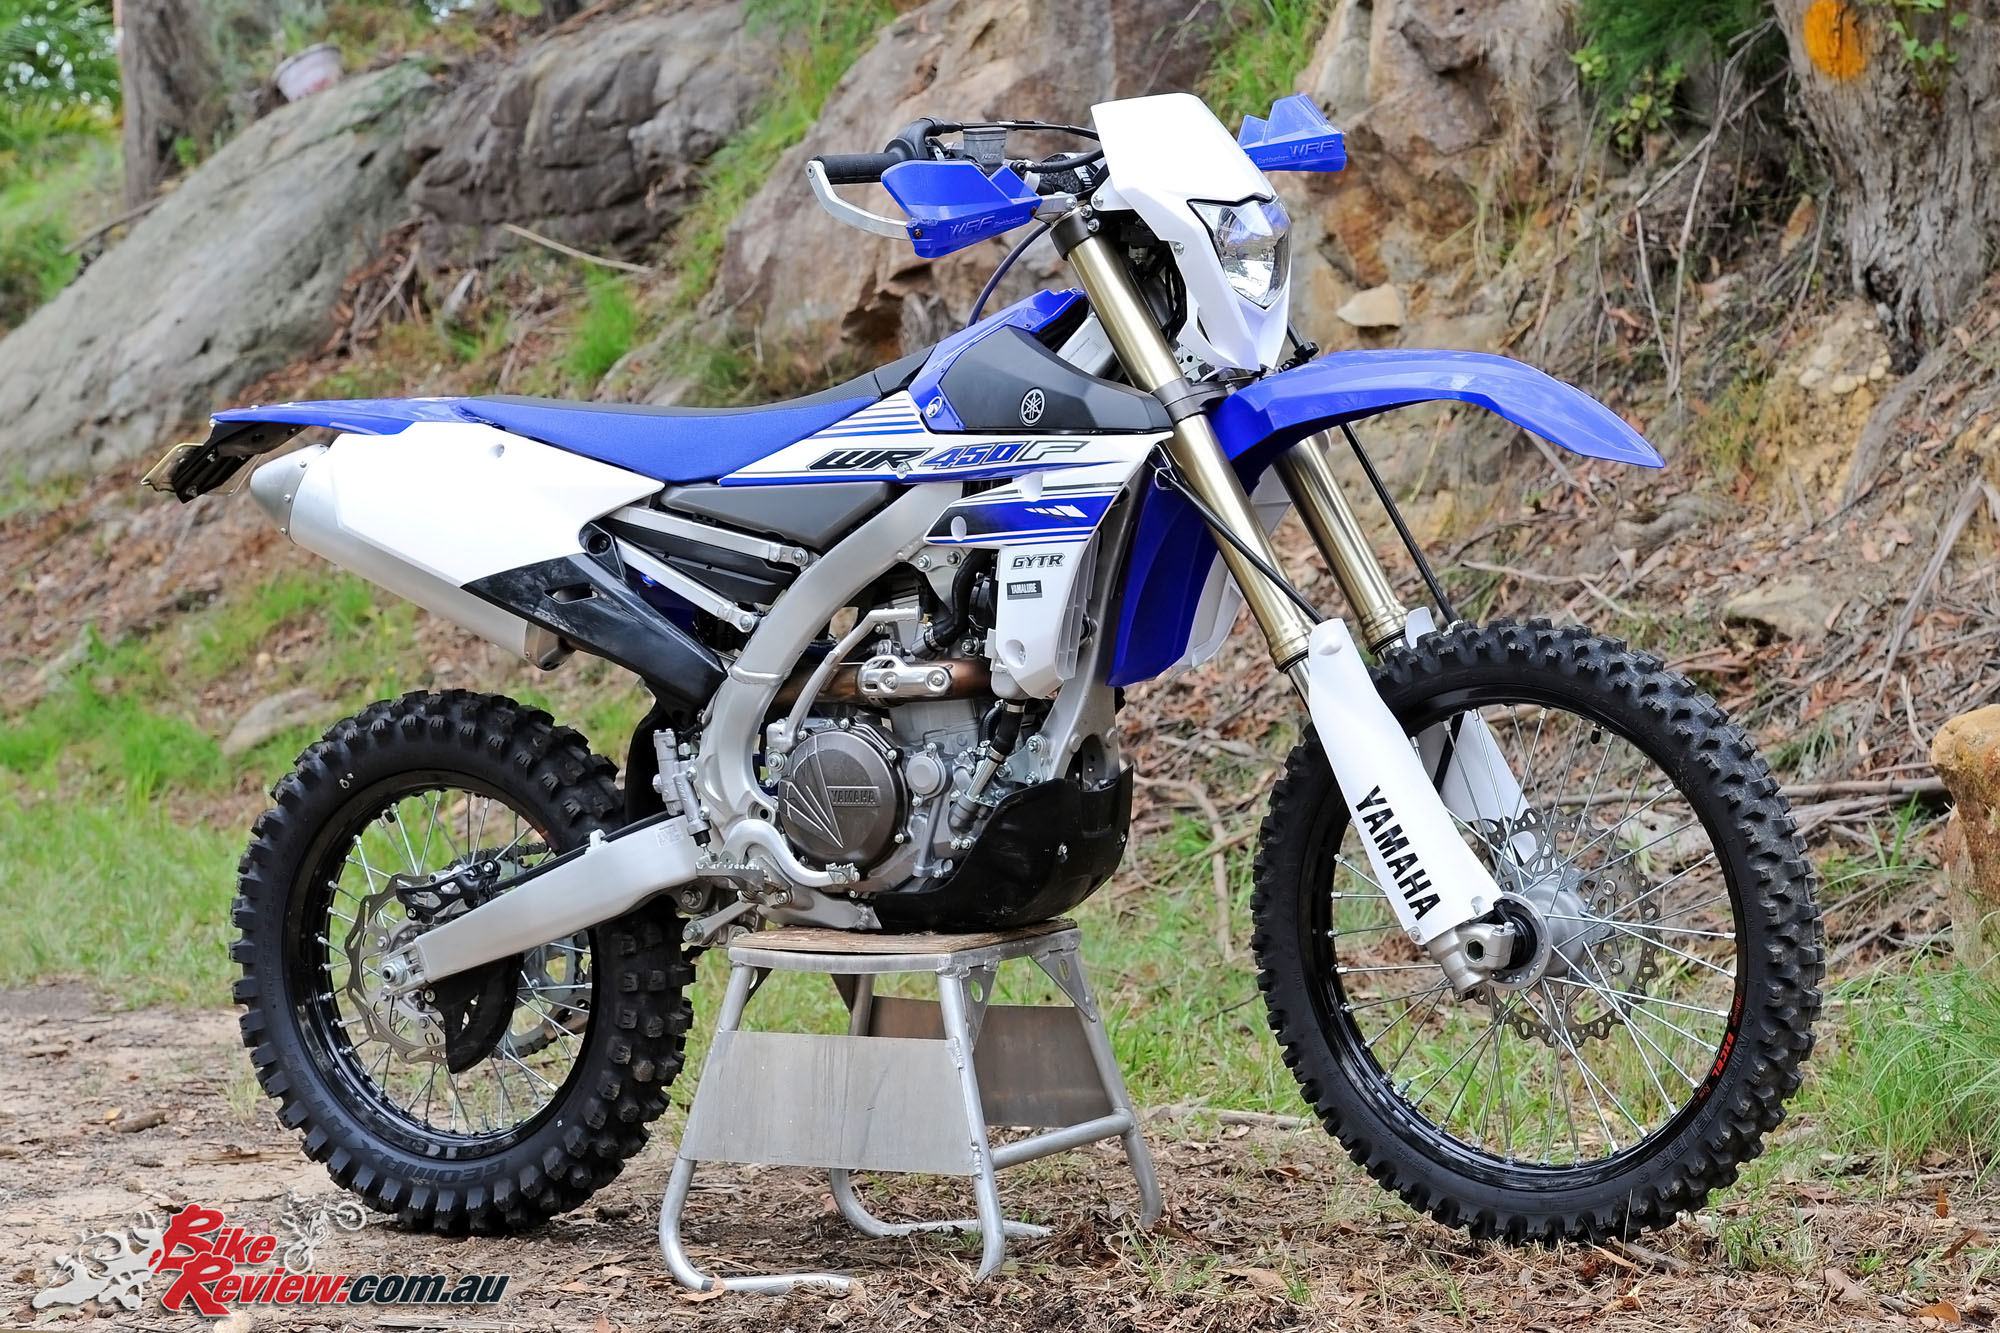 Yamaha Wrf Review